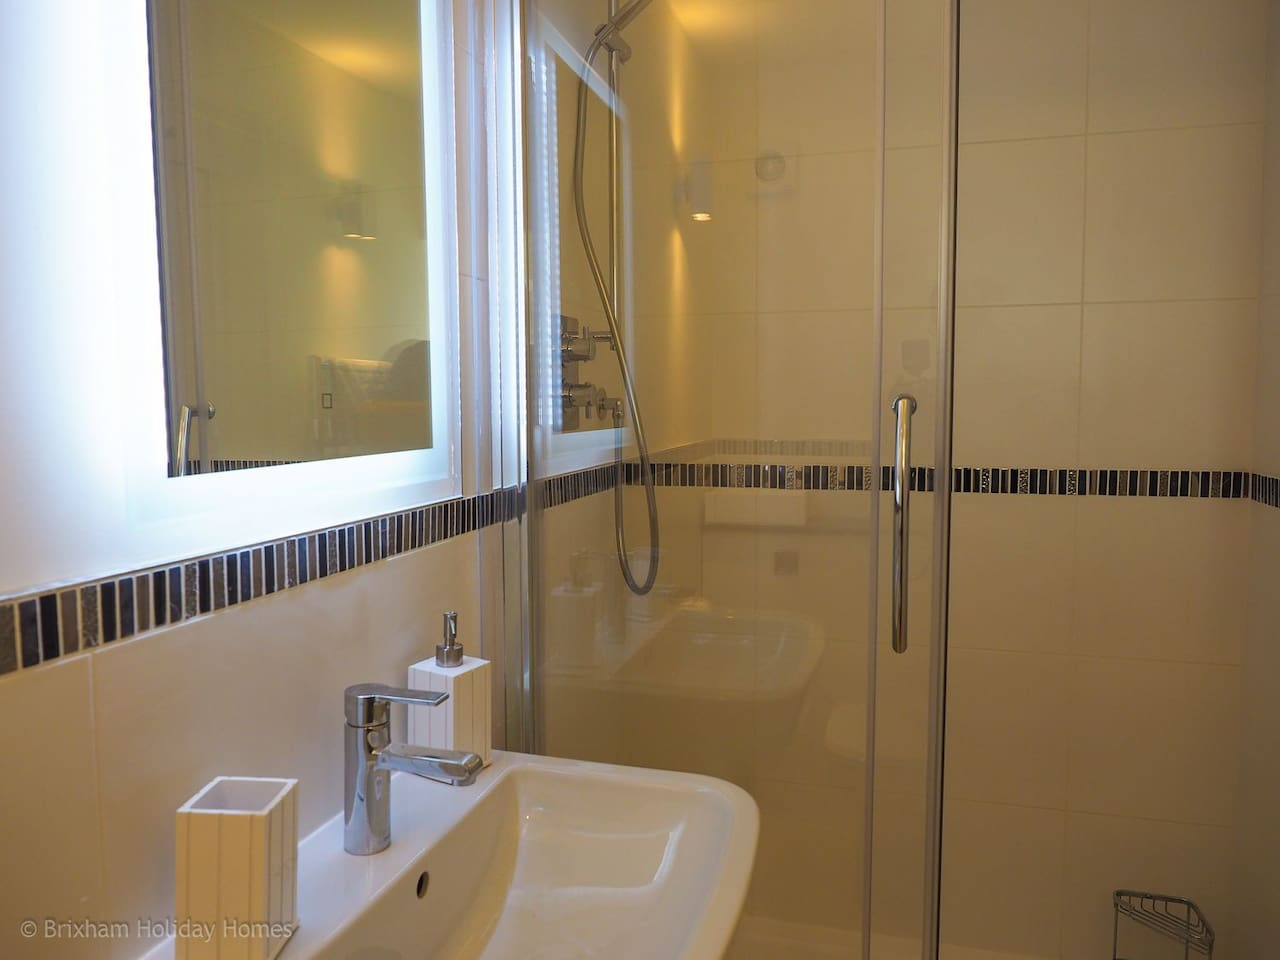 2nd En-suite shower room